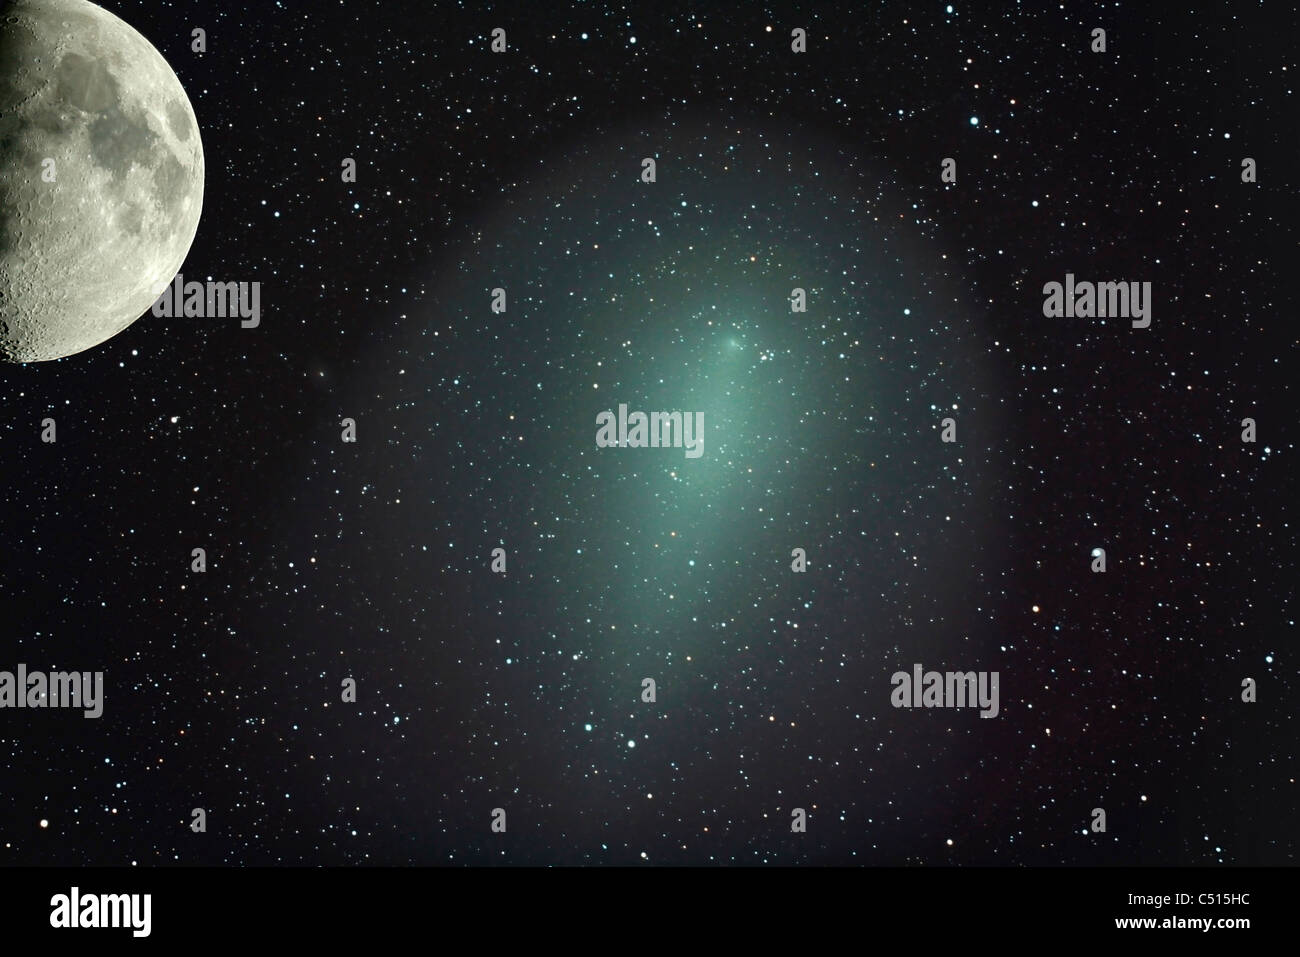 Size of Comet Holmes in comparison with the moon. - Stock Image